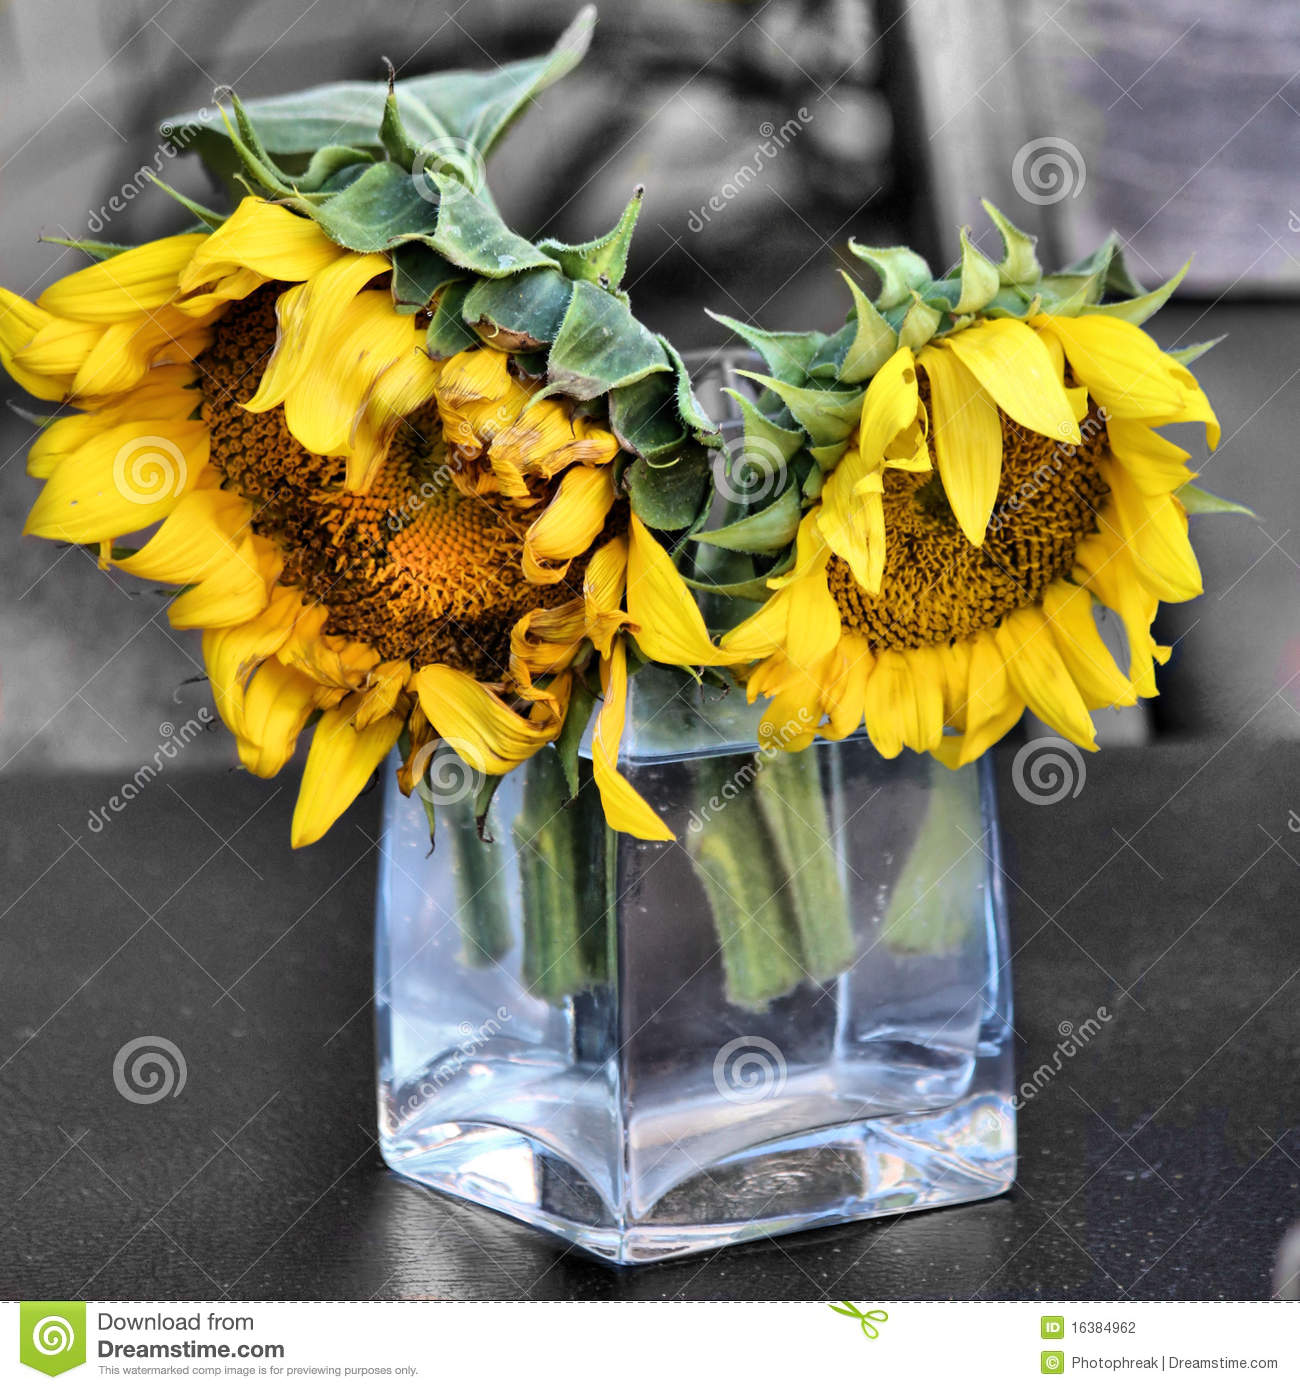 Two Sunflowers In Glass Vase Stock Photography Image 16384962